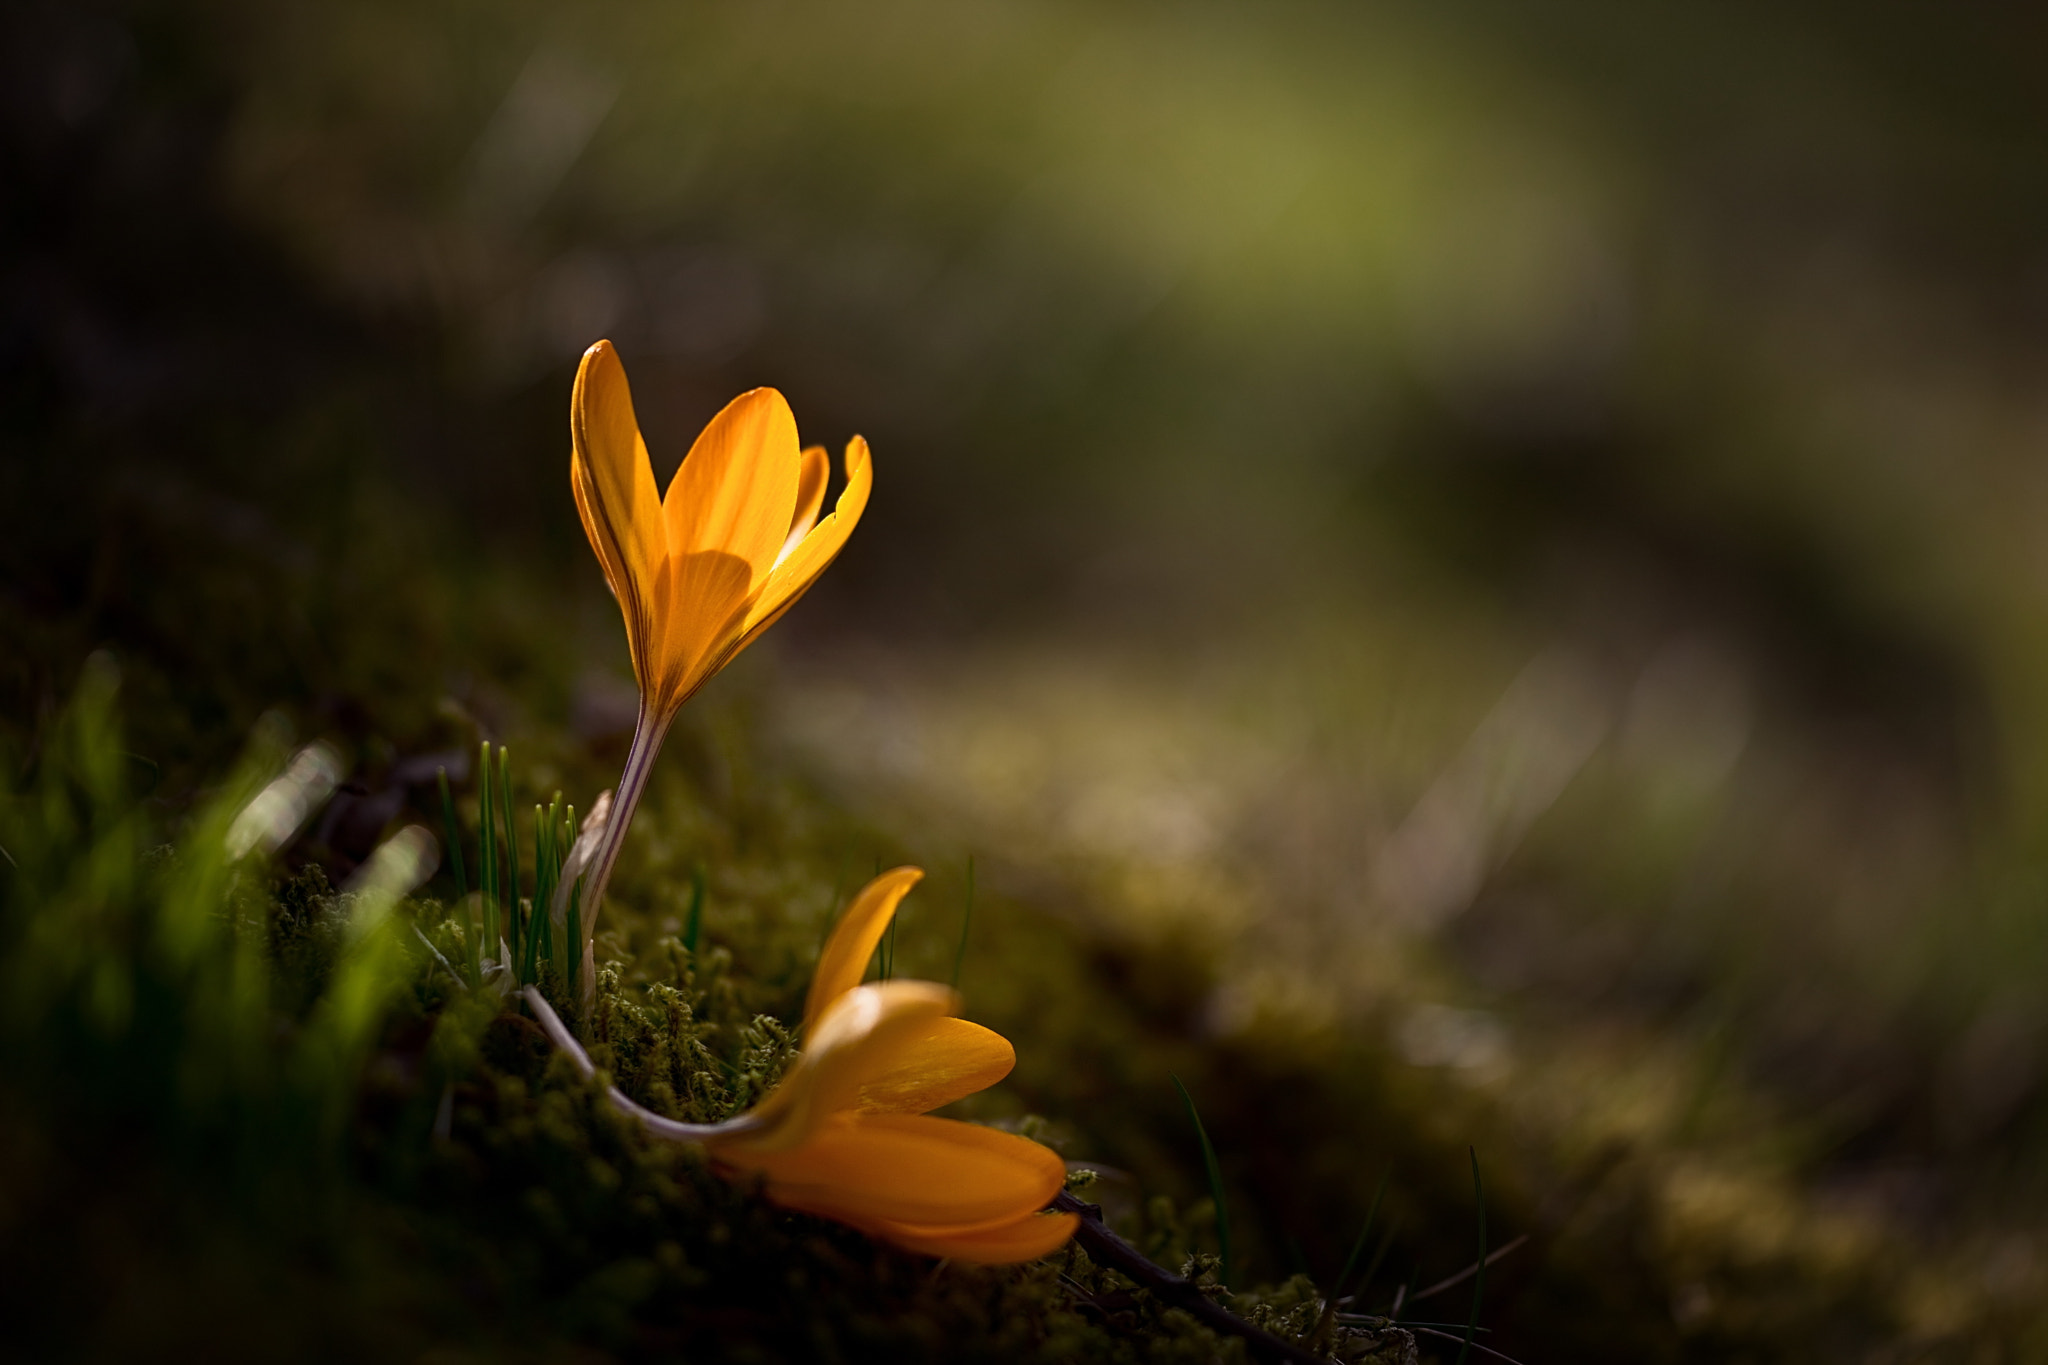 Photograph soon it's time again by Birgit Pittelkow on 500px